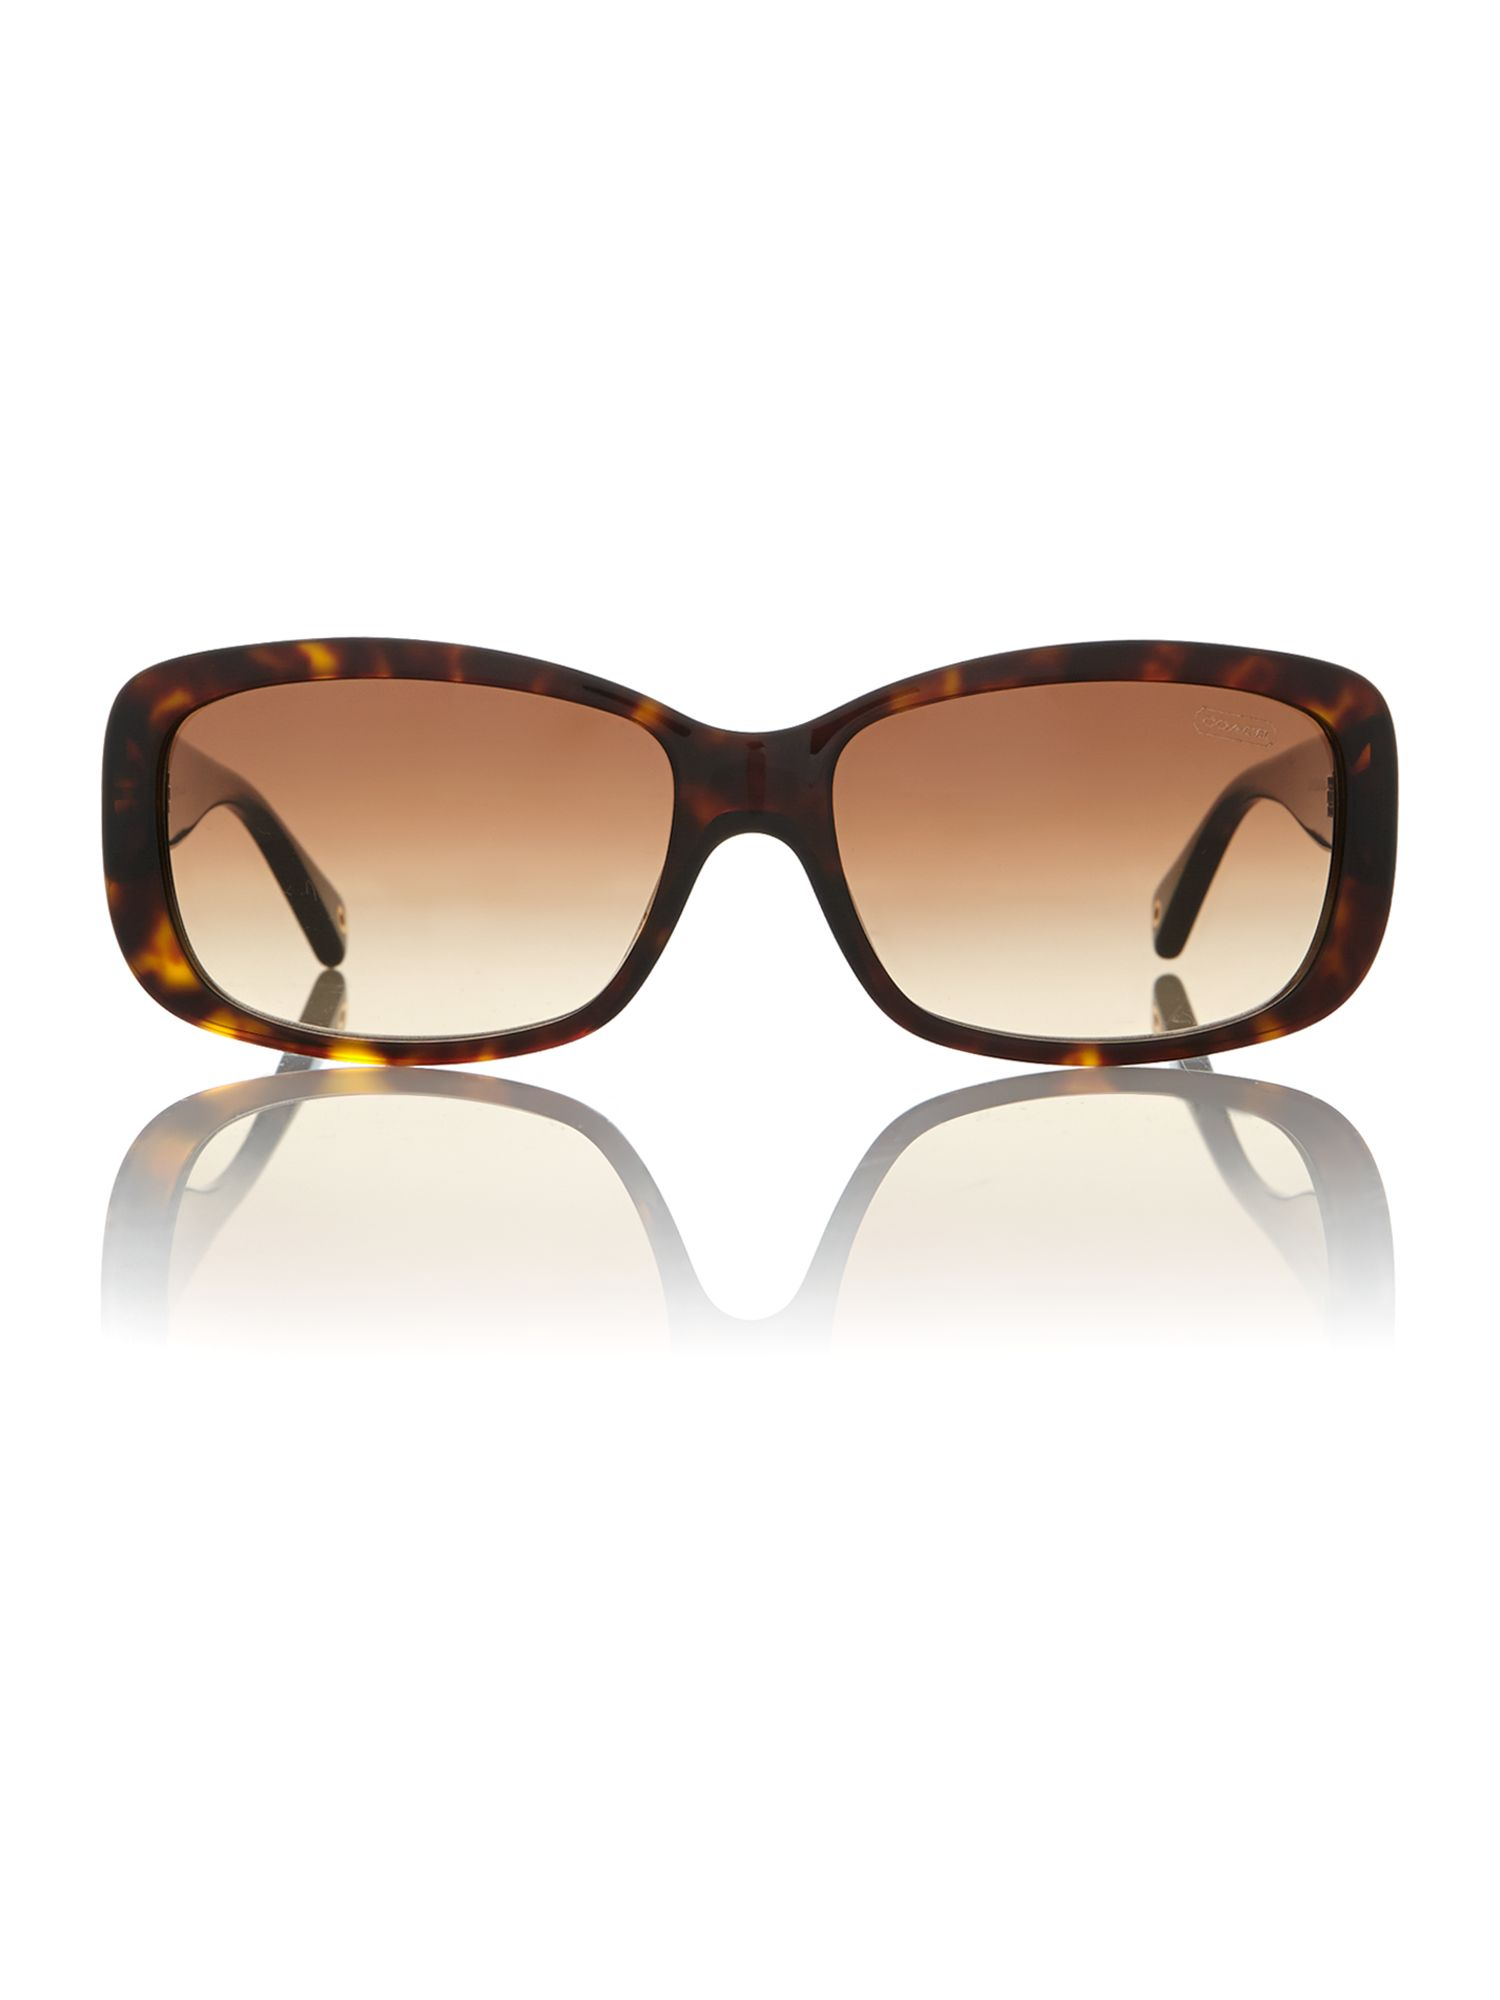 Ladies HC8041 tortoise joanie sunglasses